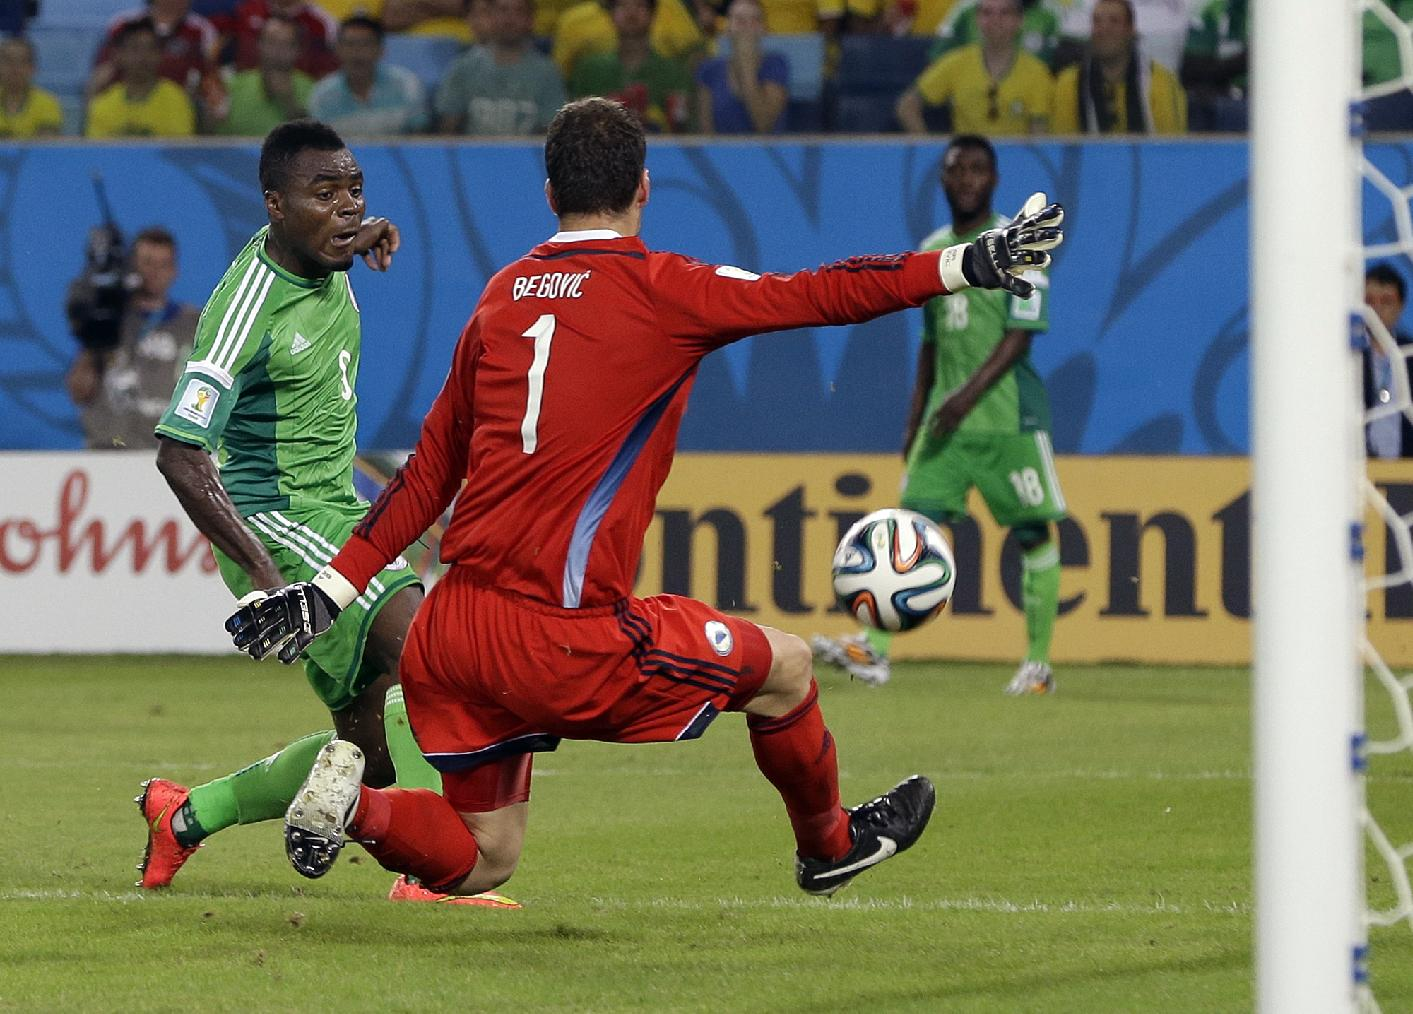 Nigeria's Emmanuel Emenike, left, shoots against Bosnia's goalkeeper Asmir Begovic, but the ball goes wide during the group F World Cup soccer match between Nigeria and Bosnia at the Arena Pantanal in Cuiaba, Brazil, Saturday, June 21, 2014